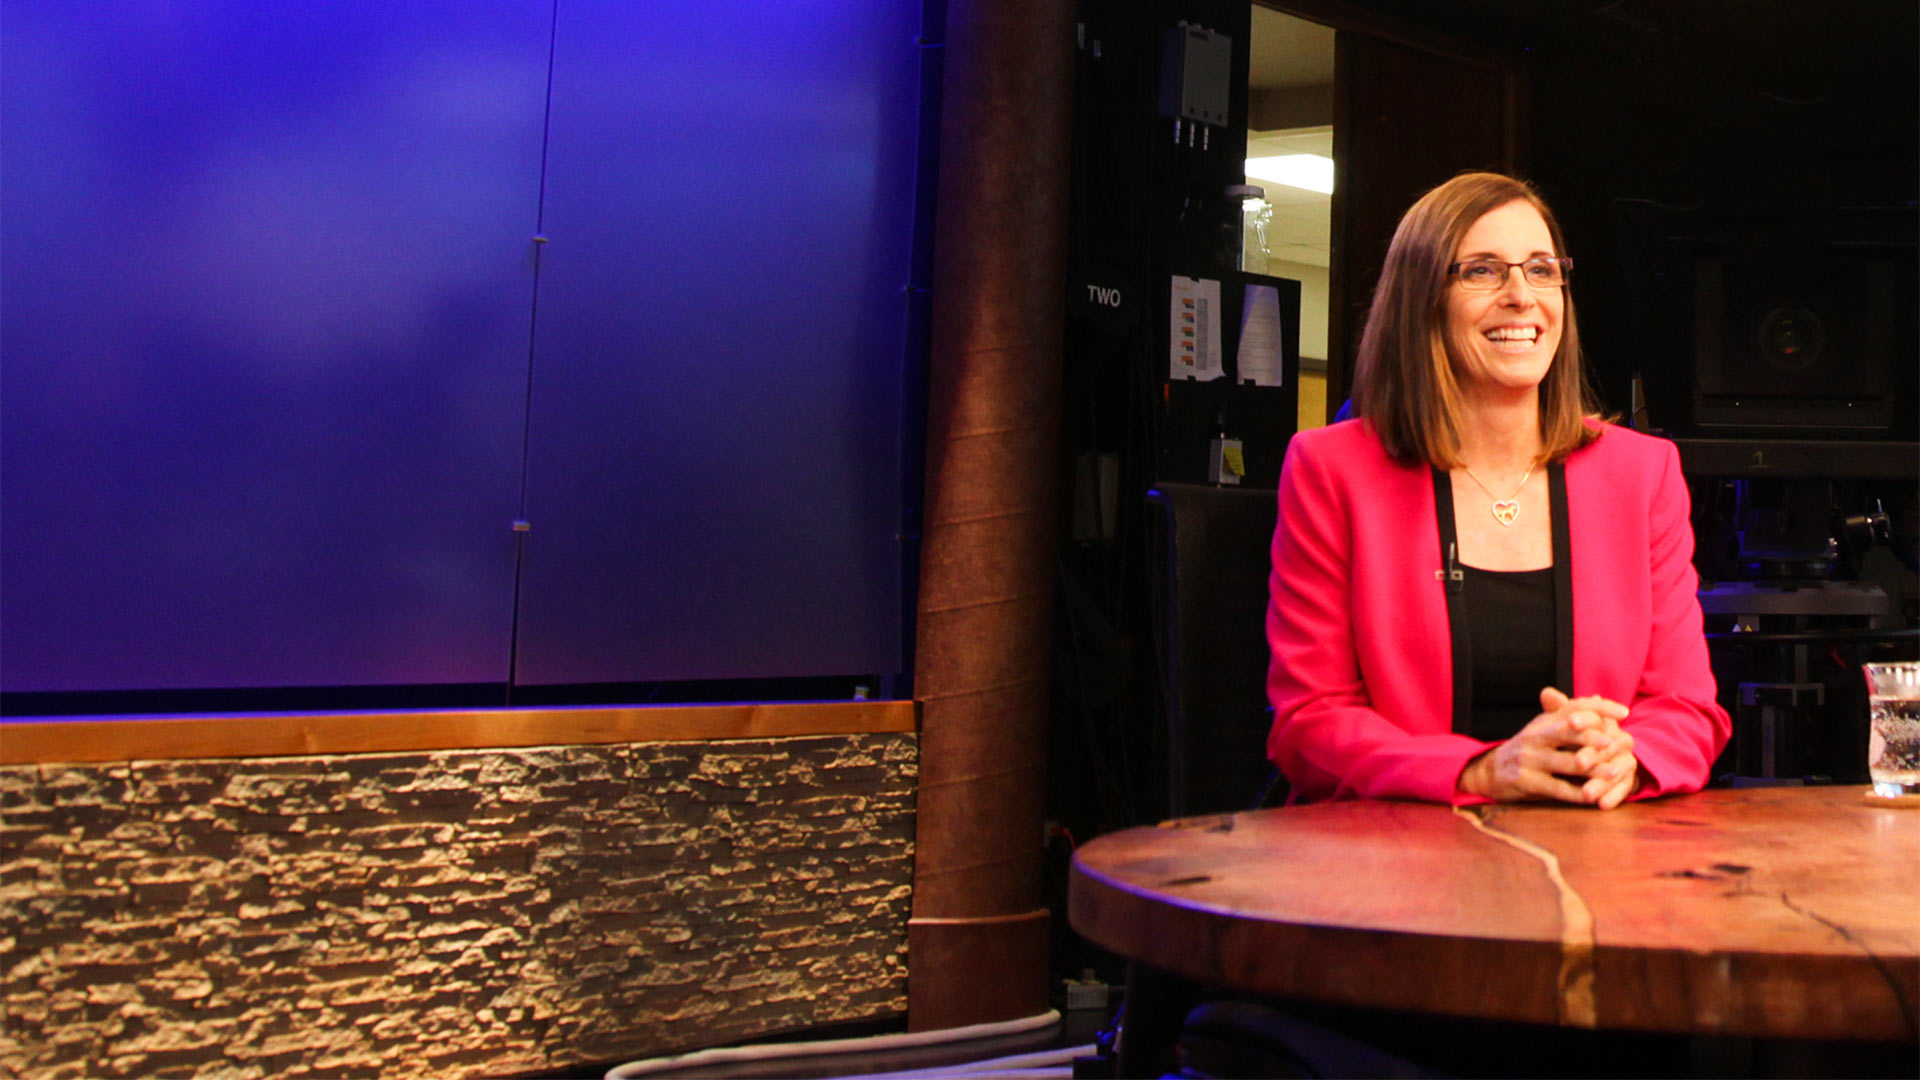 U.S. Rep. Martha McSally, R-Ariz., in studio at Arizona Public Media, July 5, 2017.